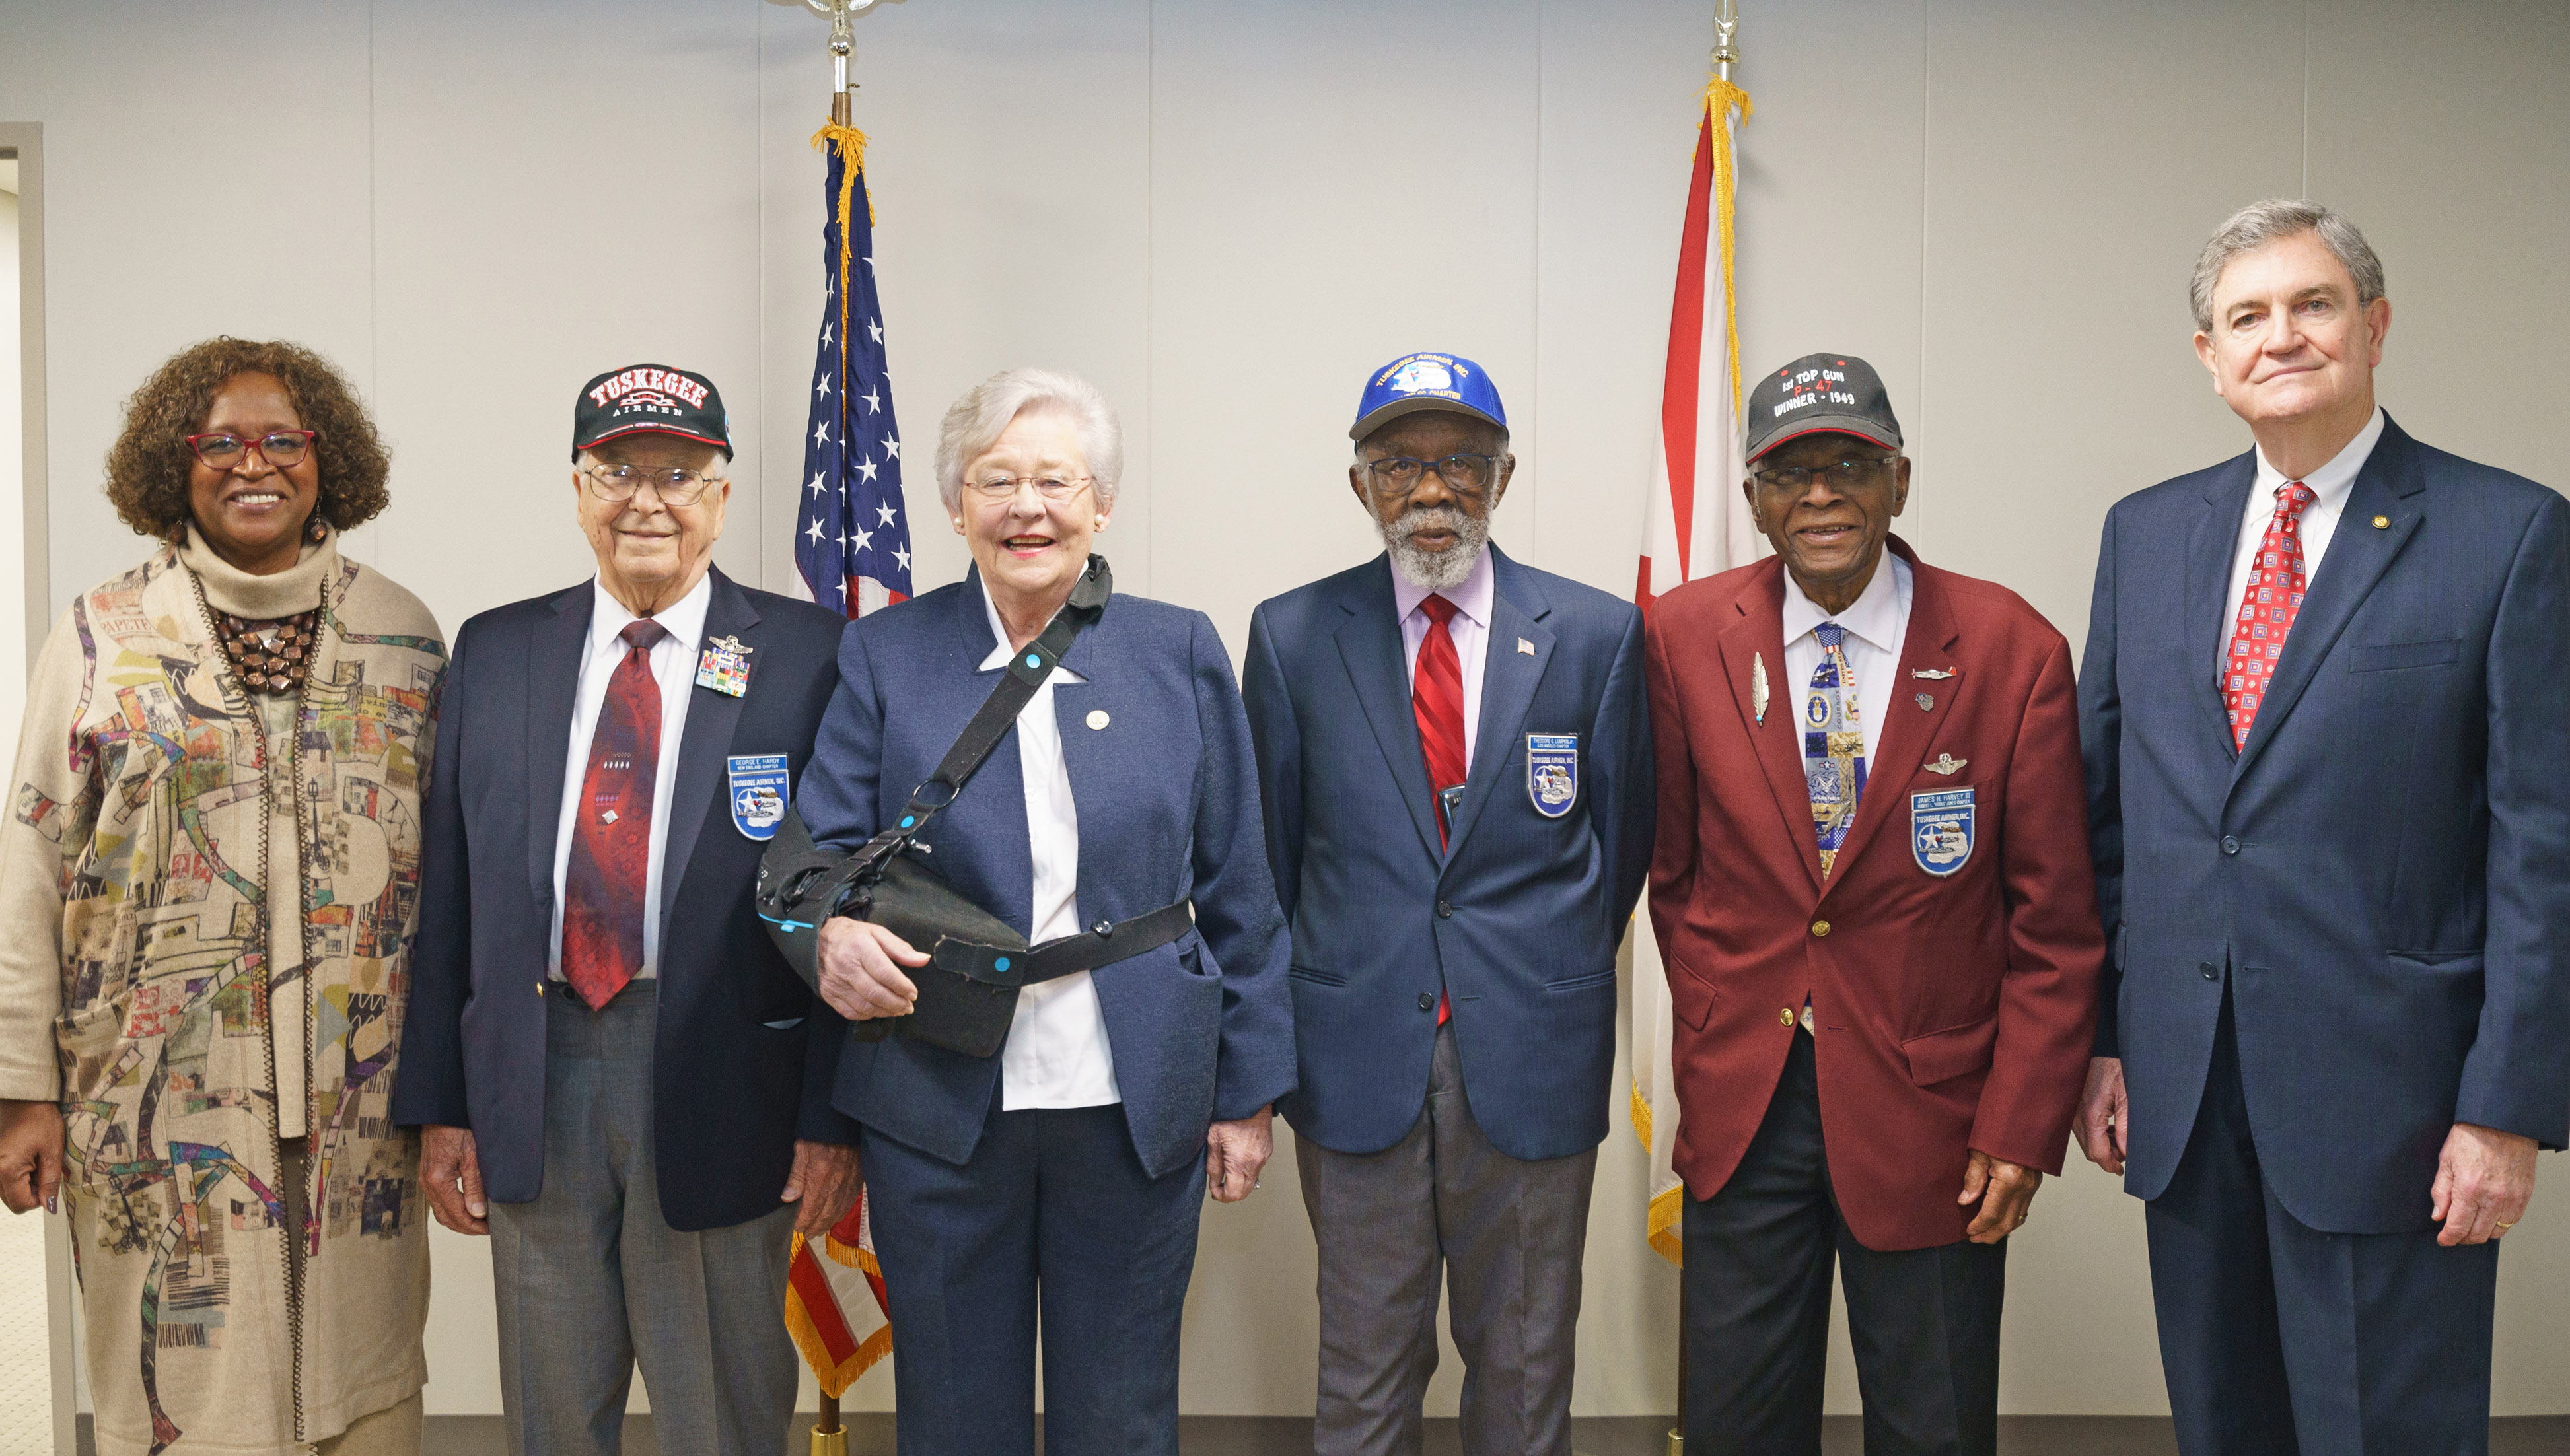 On March 5, Alabama celebrated the Tuskegee Airmen legacy through a joint session of the Alabama legislature, which included (left to right) Rep. Pebblin Warren, Lt. Col. (Ret.) George Hardy, Gov. Kay Ivey, Lt. Col. (Ret.) James Harvey, Lt. Col. (Ret.) Ted Lumpkin, and Sen. Billy Beasley. (Credit: Governor's Office/Sydney A. Foster)